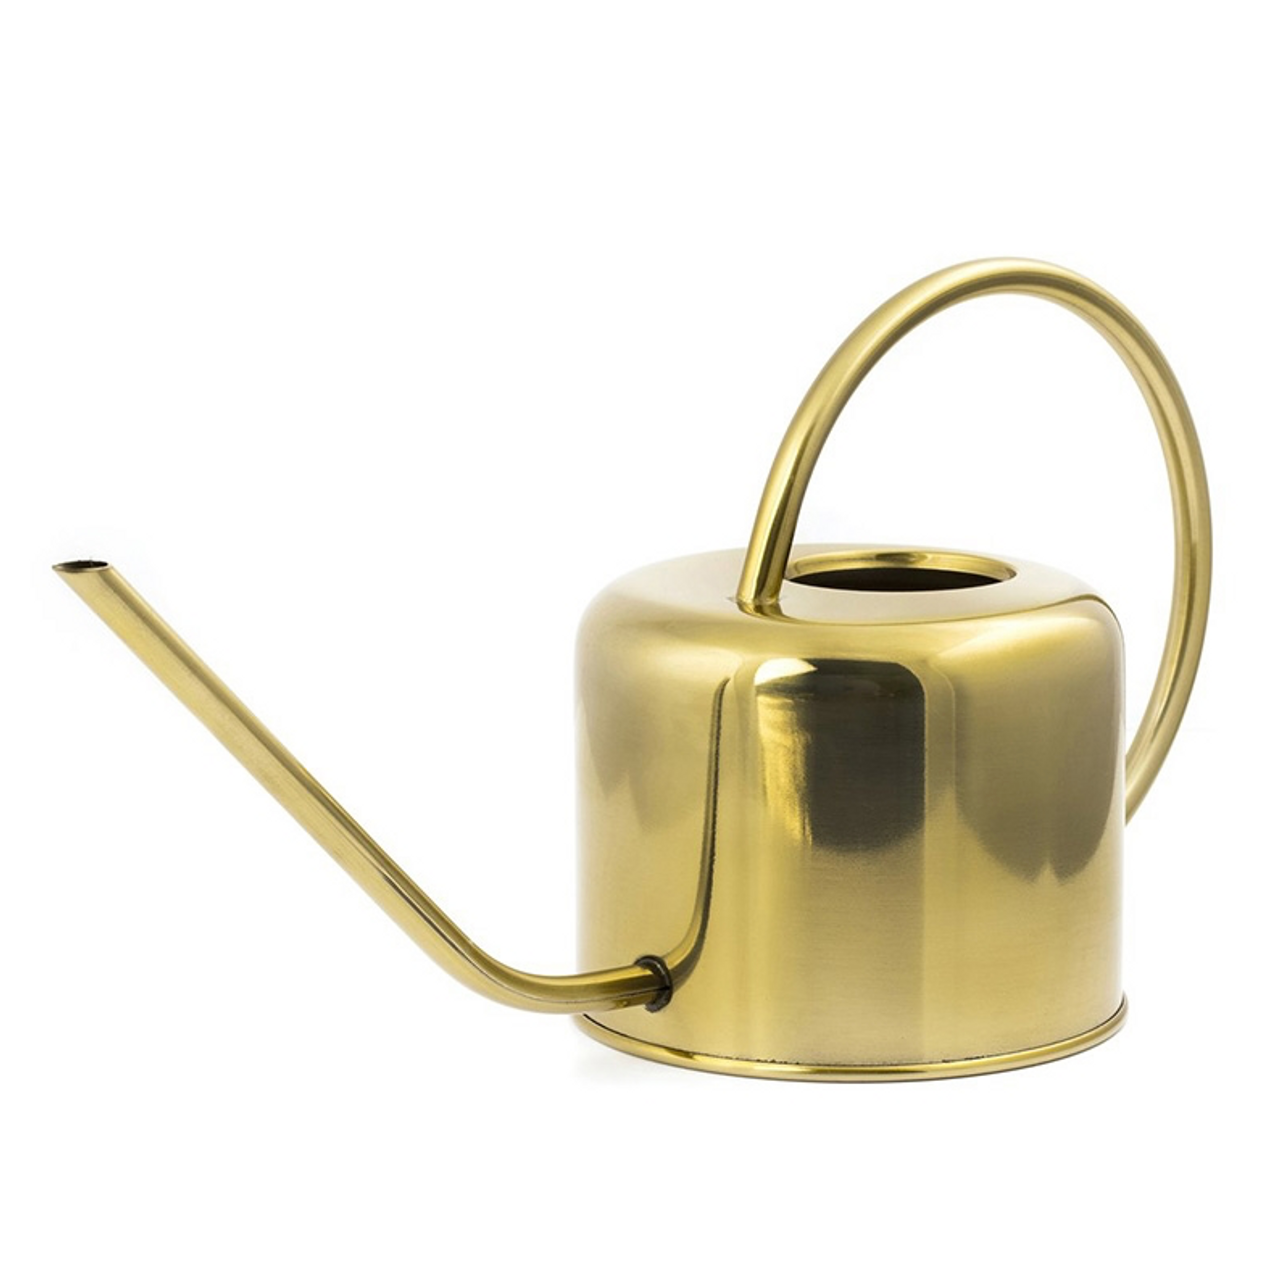 "This beautiful brass watering can is a great design for your garden or houseplants. It is 13.5"" wide , 7.5 high and 5"" long."